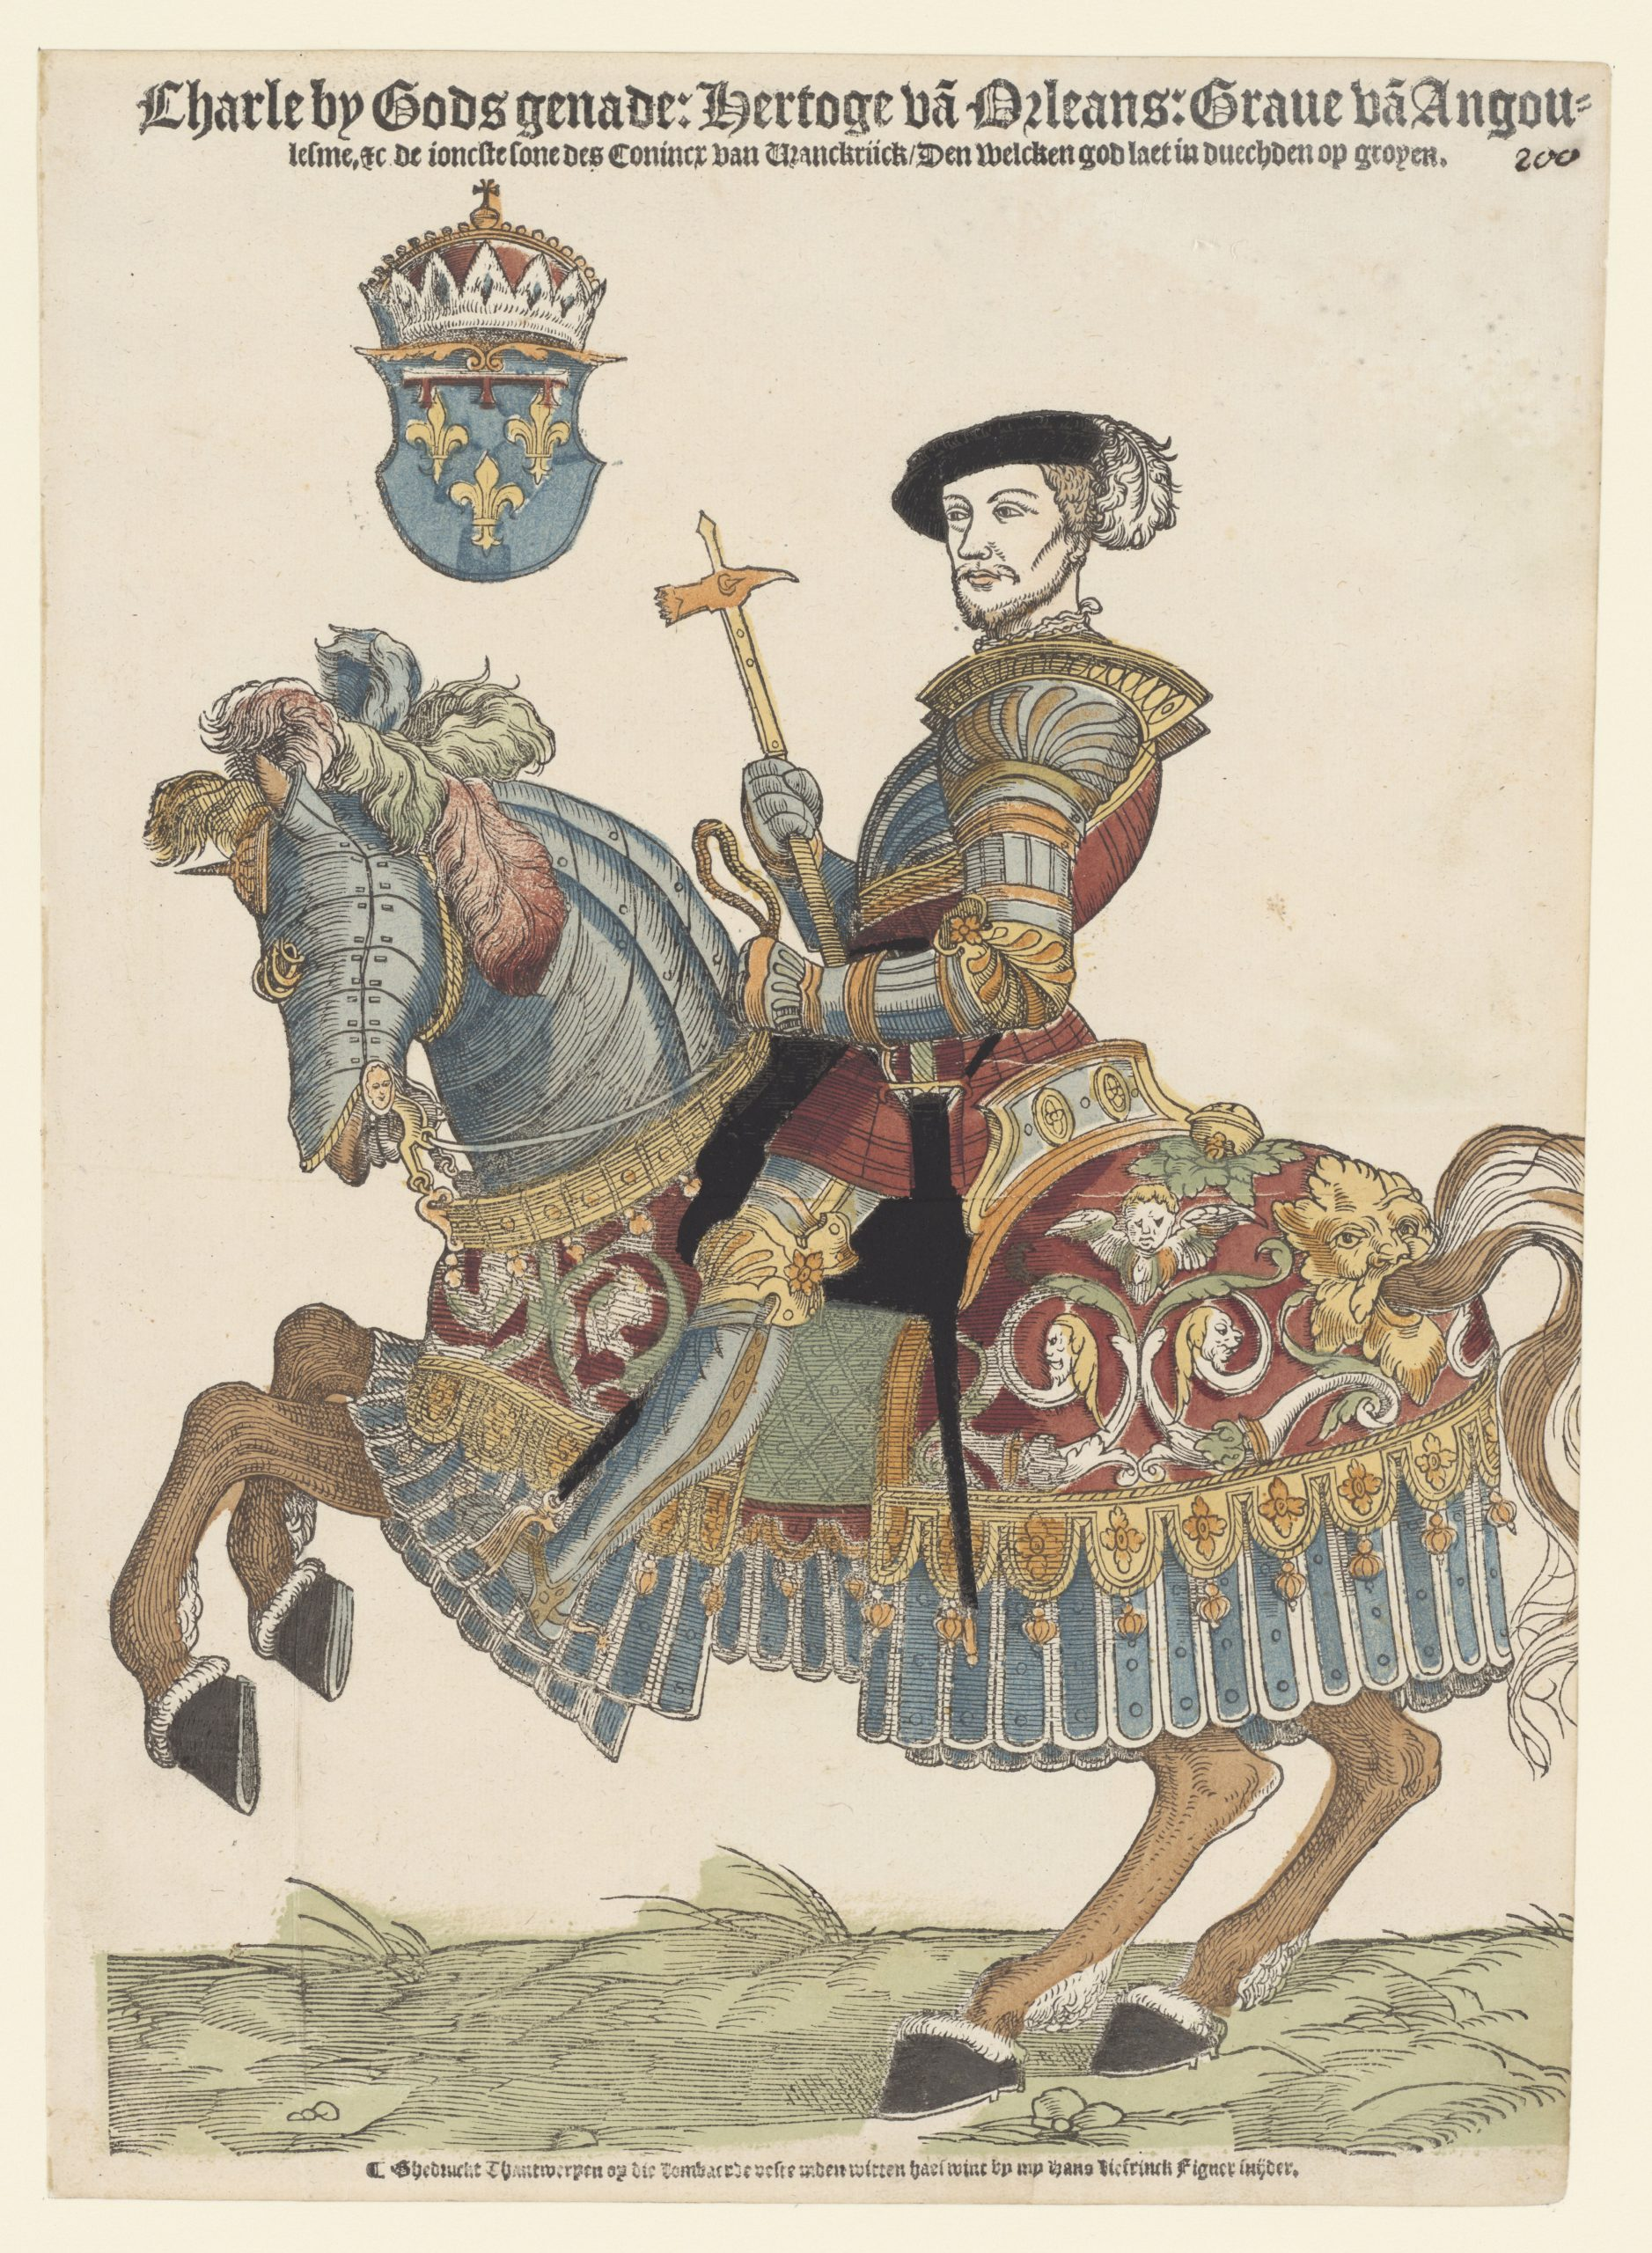 Charles, Duke of Orleans, on Horseback, 1538-45, Cornelis Anthonisz (manner of) and Hans Liefrinck (I), Antwerp, Netherlands